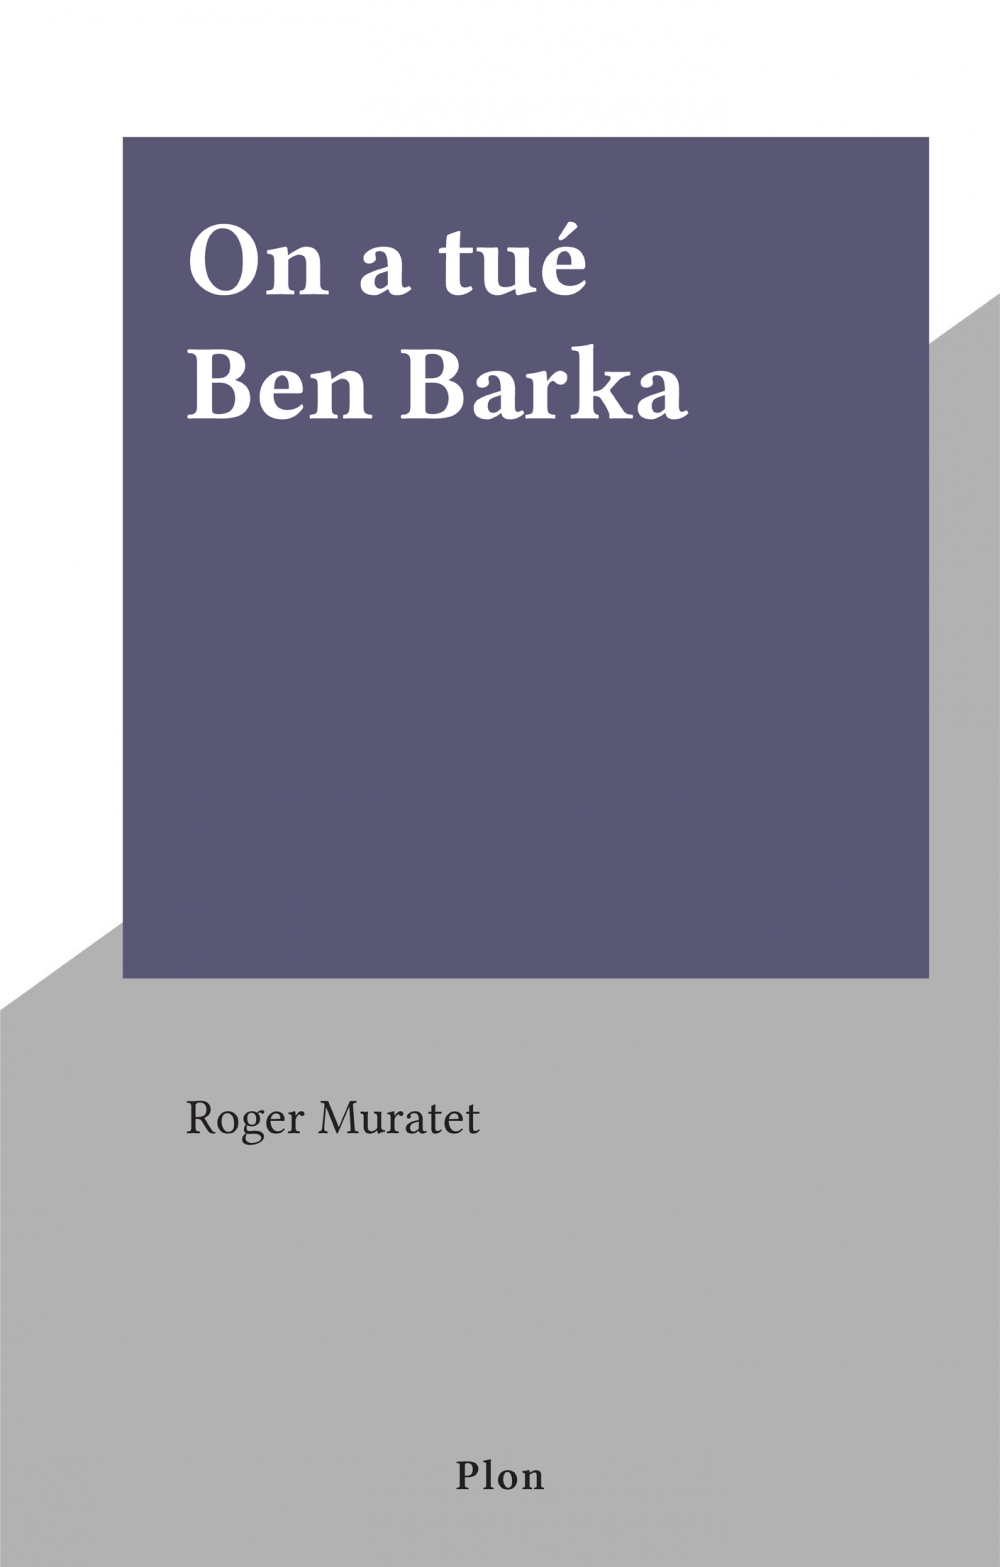 On a tué Ben Barka